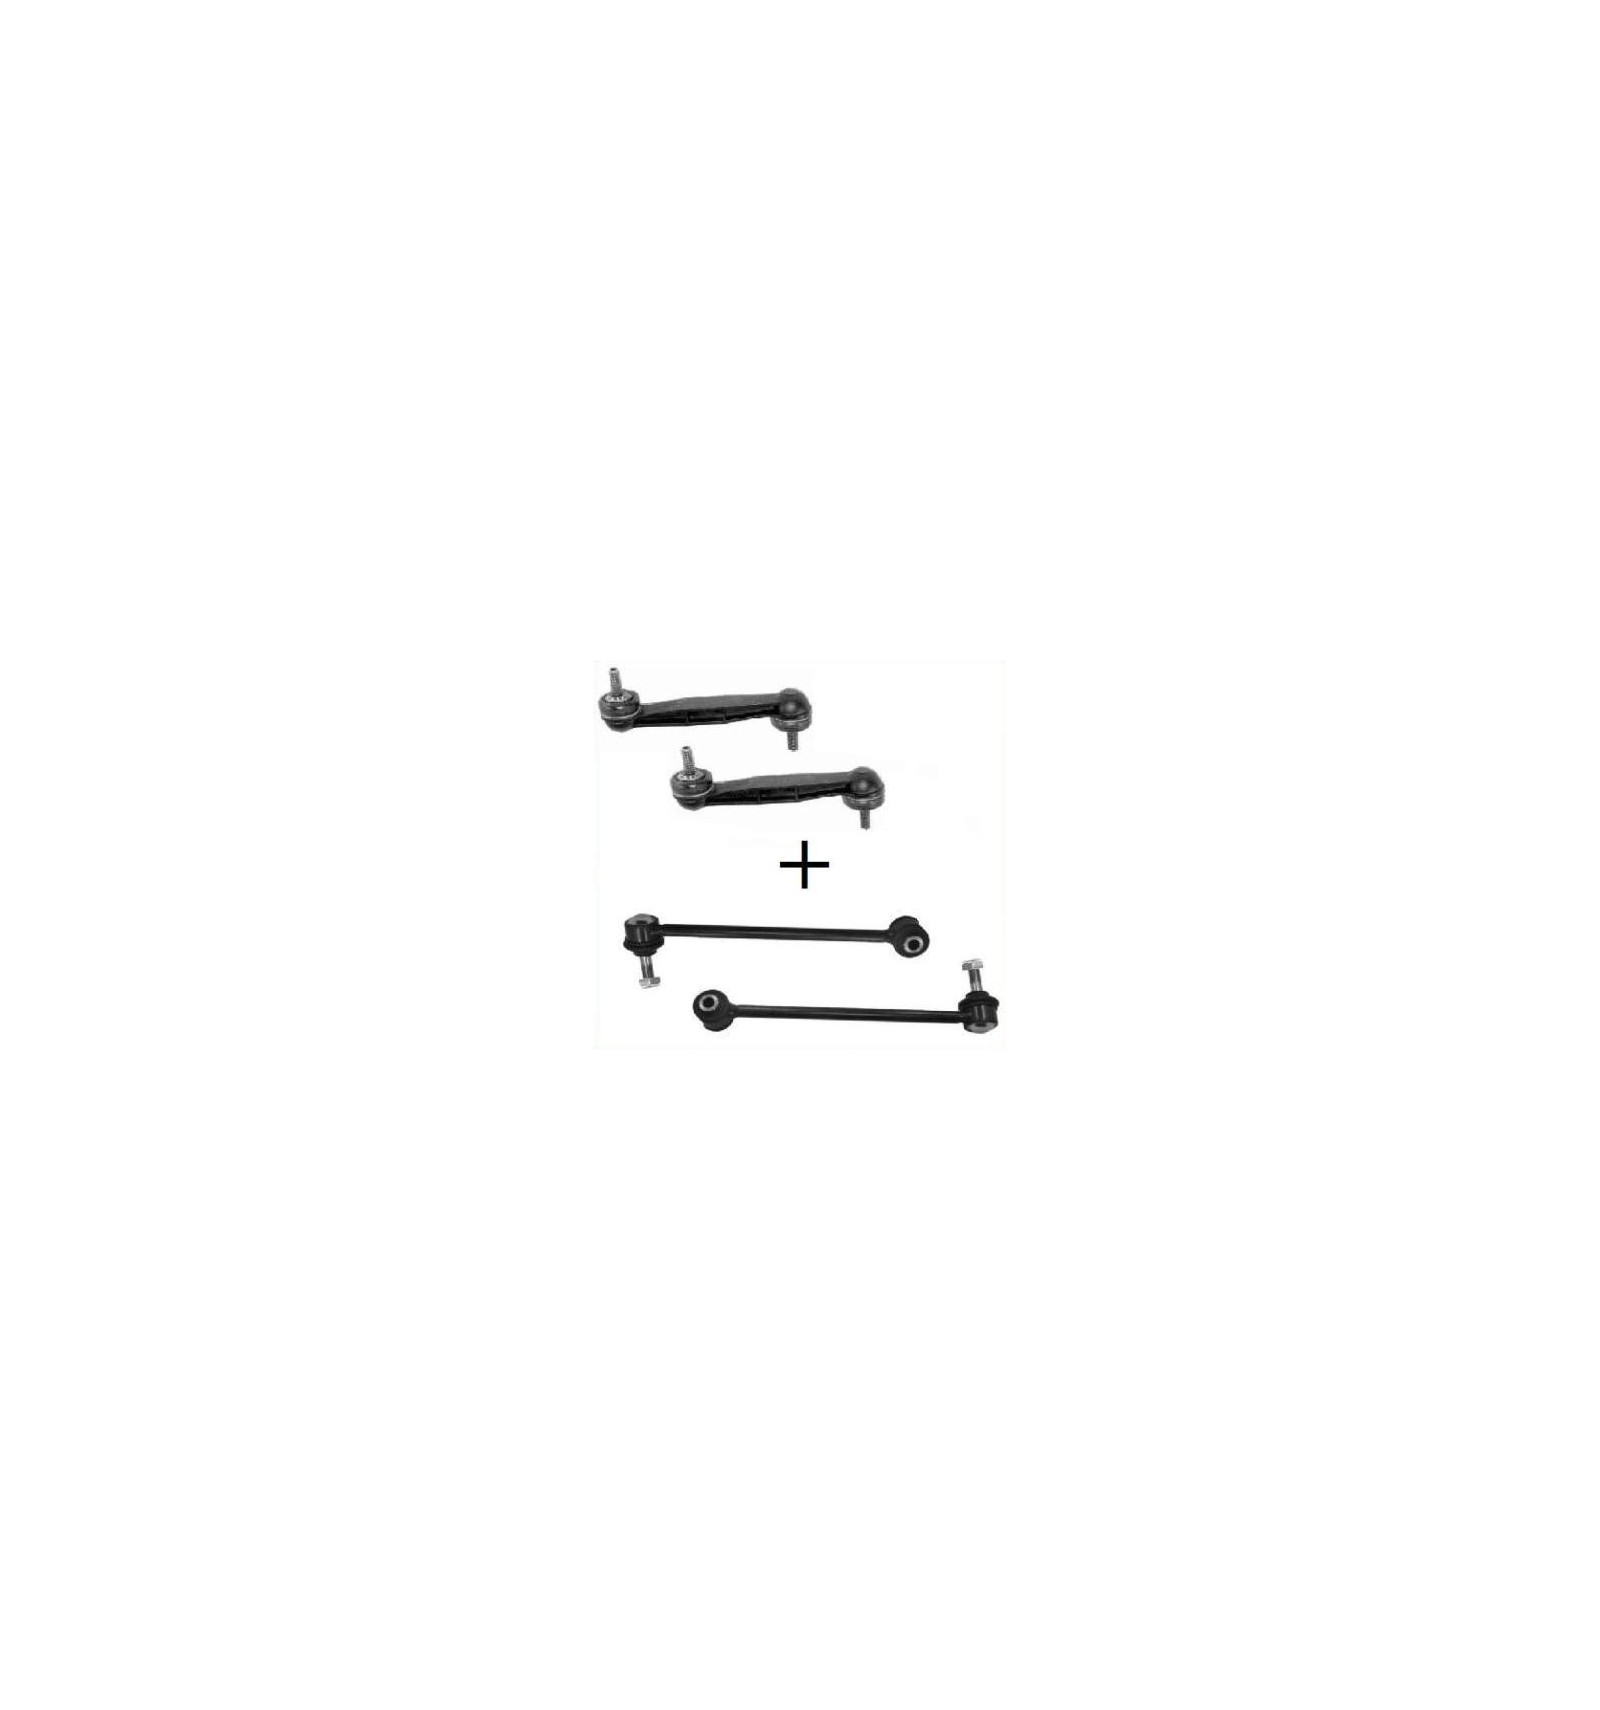 lot de 4 biellette de suspension arri re peugeot 406 origine pieces auto. Black Bedroom Furniture Sets. Home Design Ideas